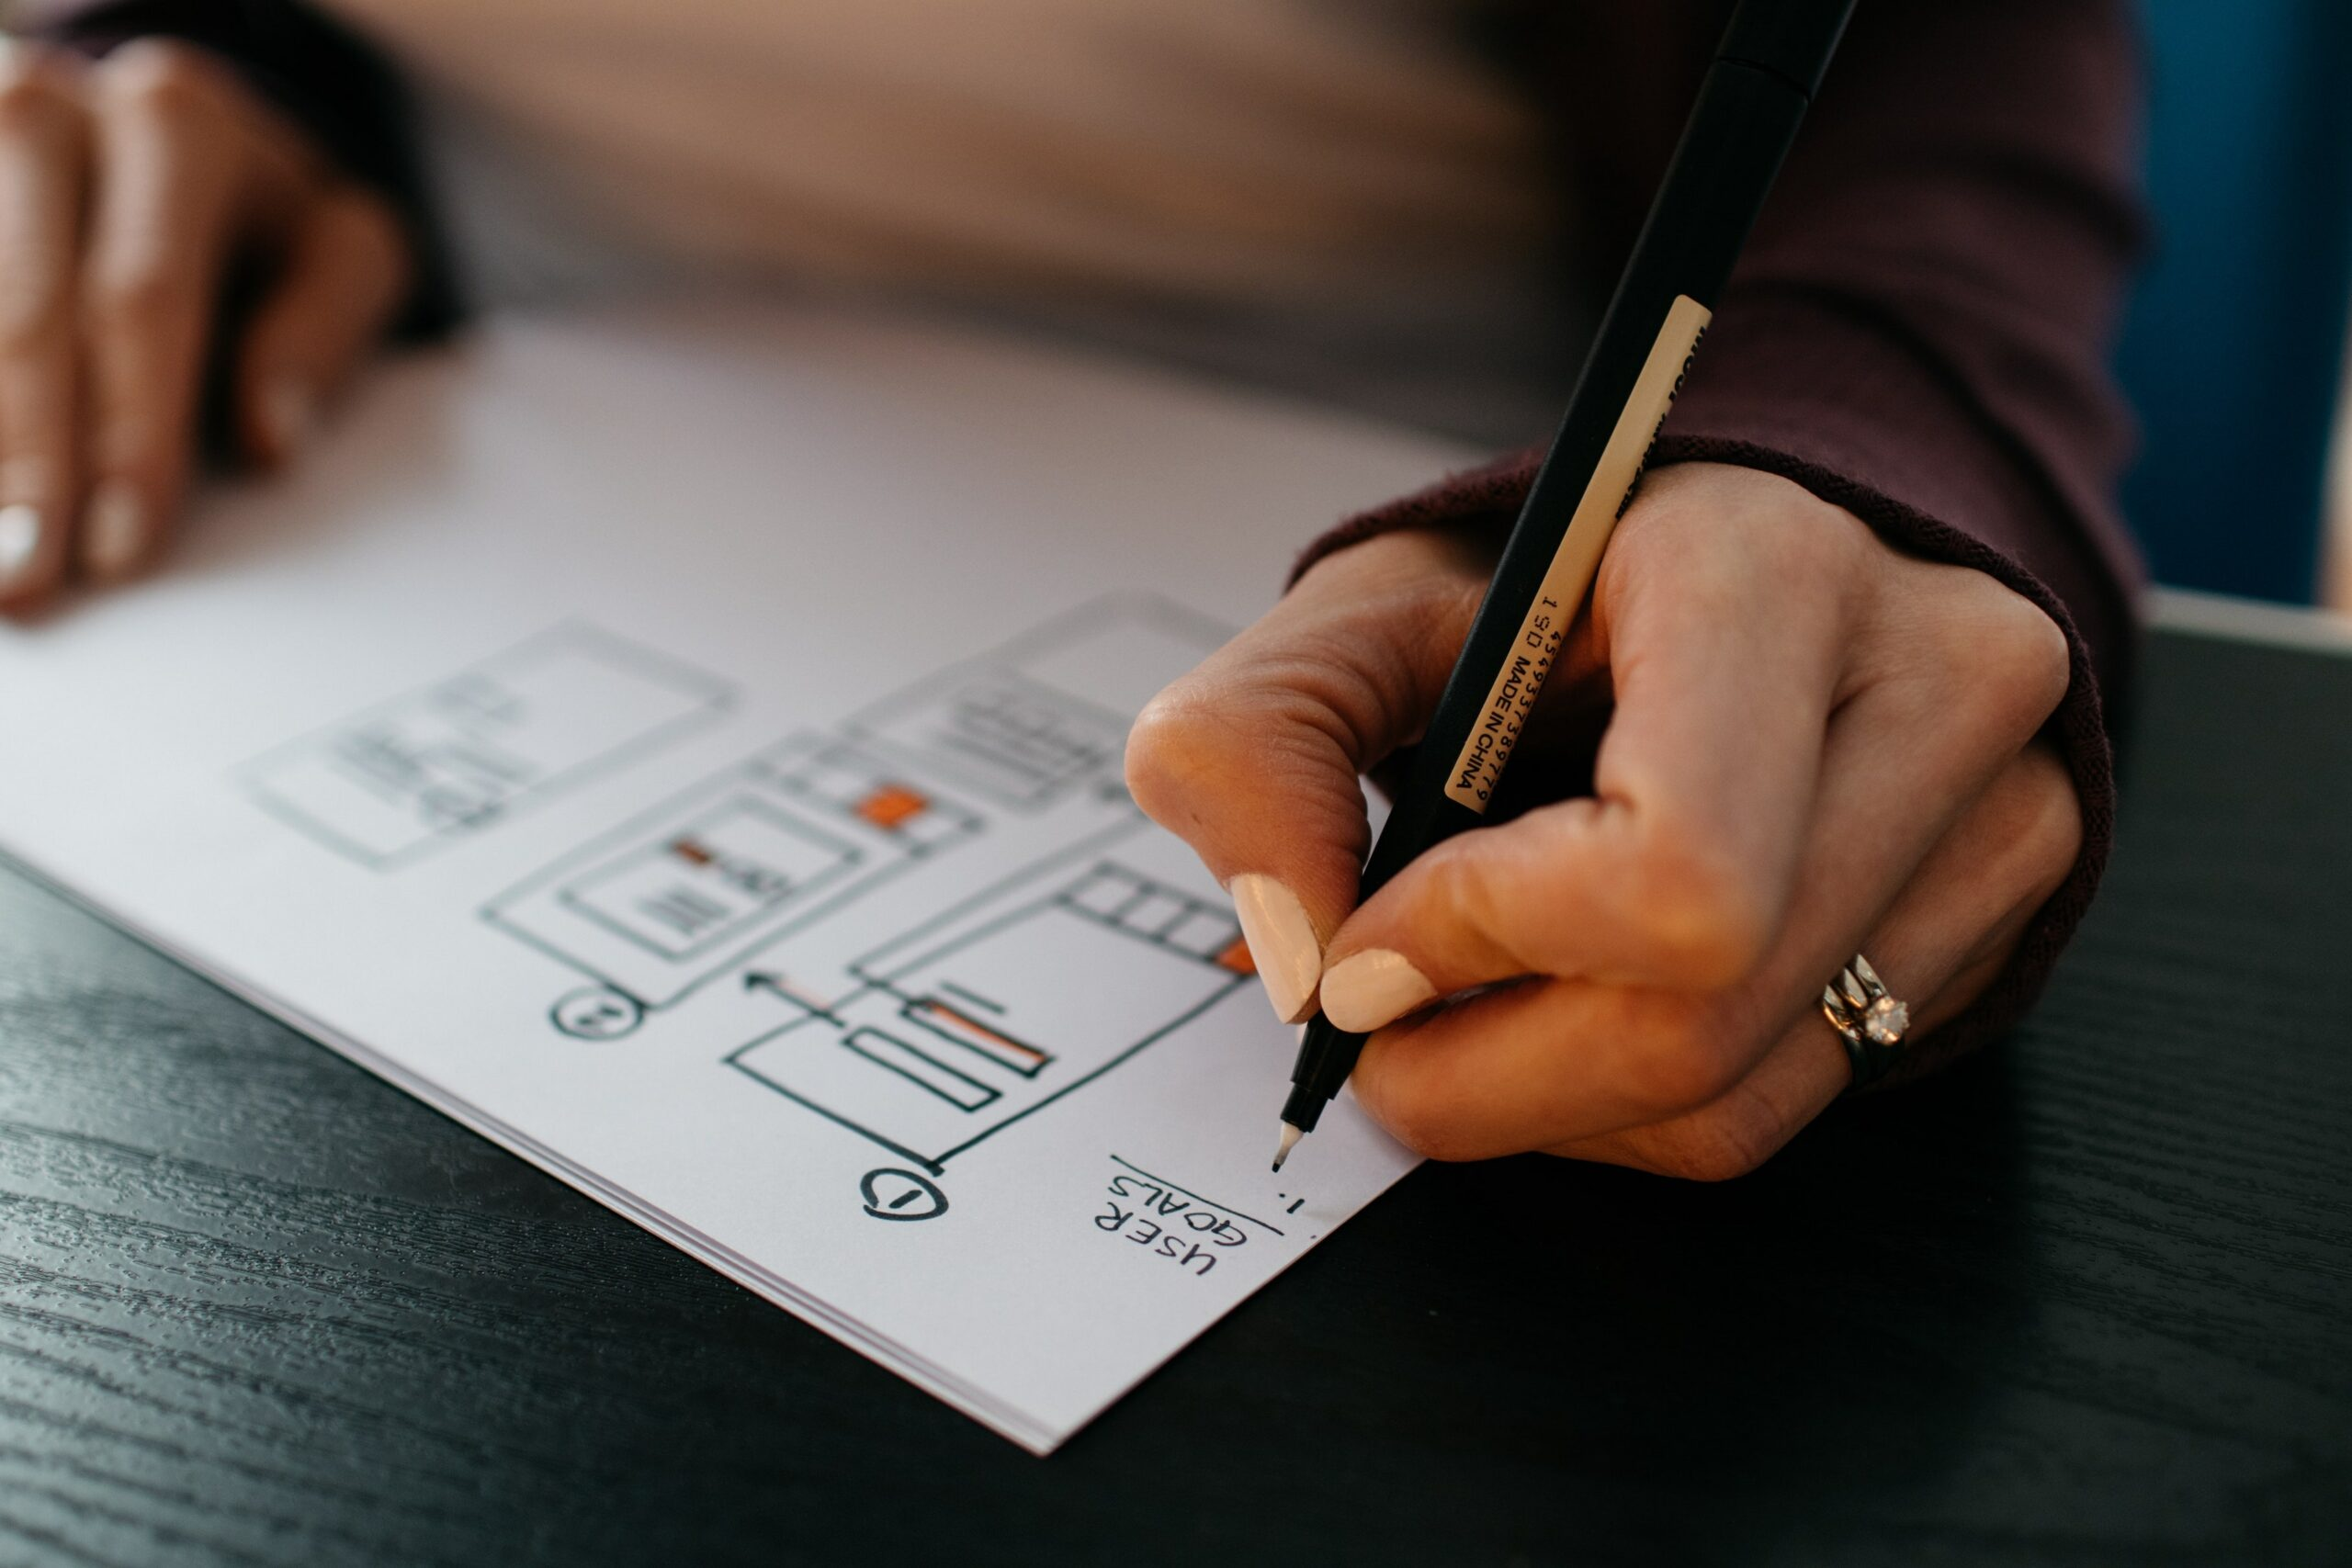 wireframes and wireframe testing: example of a wireframe sketch on paper